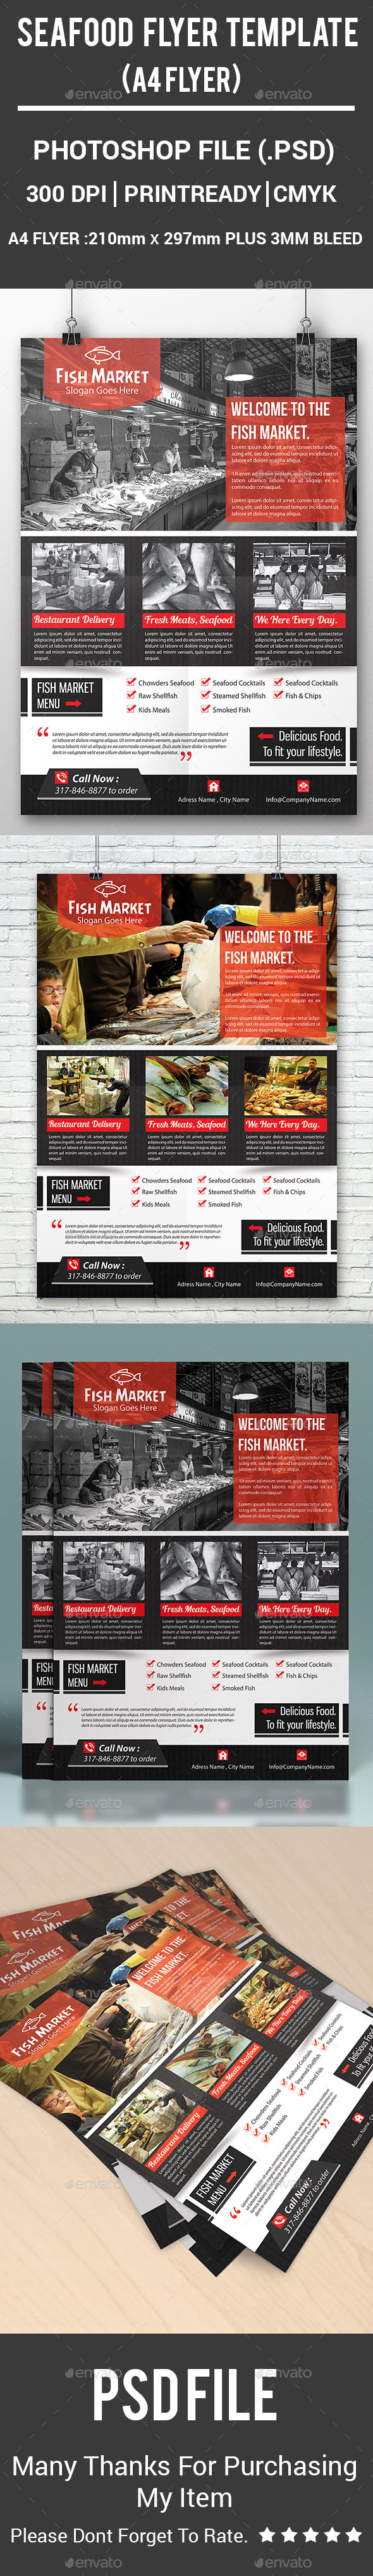 Seafood Flyer Template - Corporate Flyers